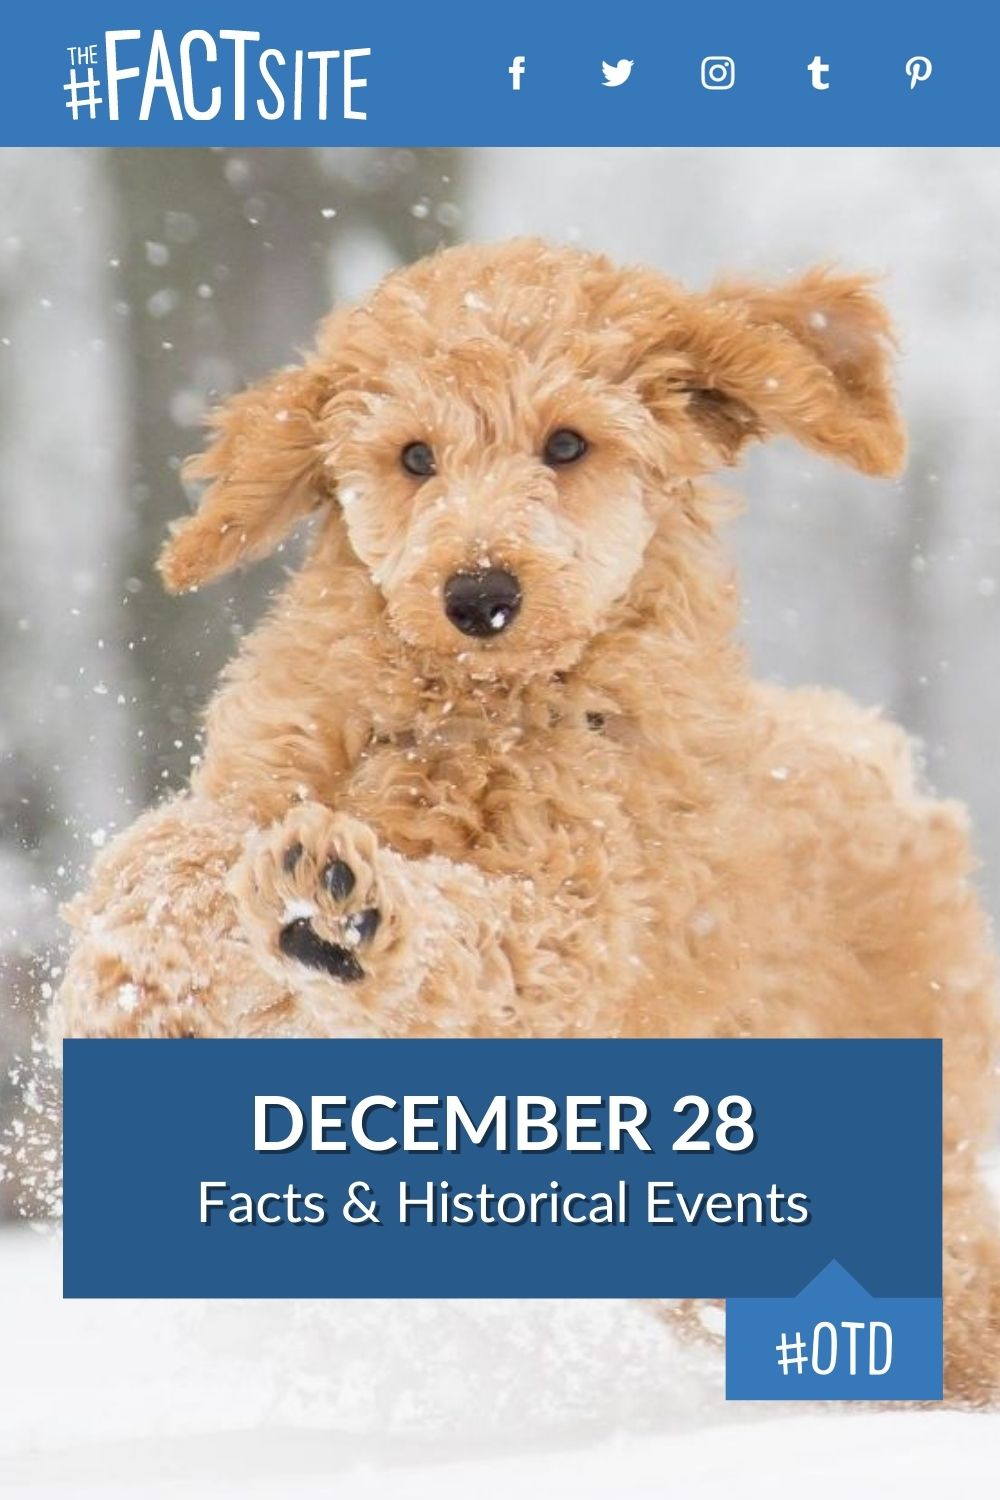 Facts & Historic Events That Happened on December 28